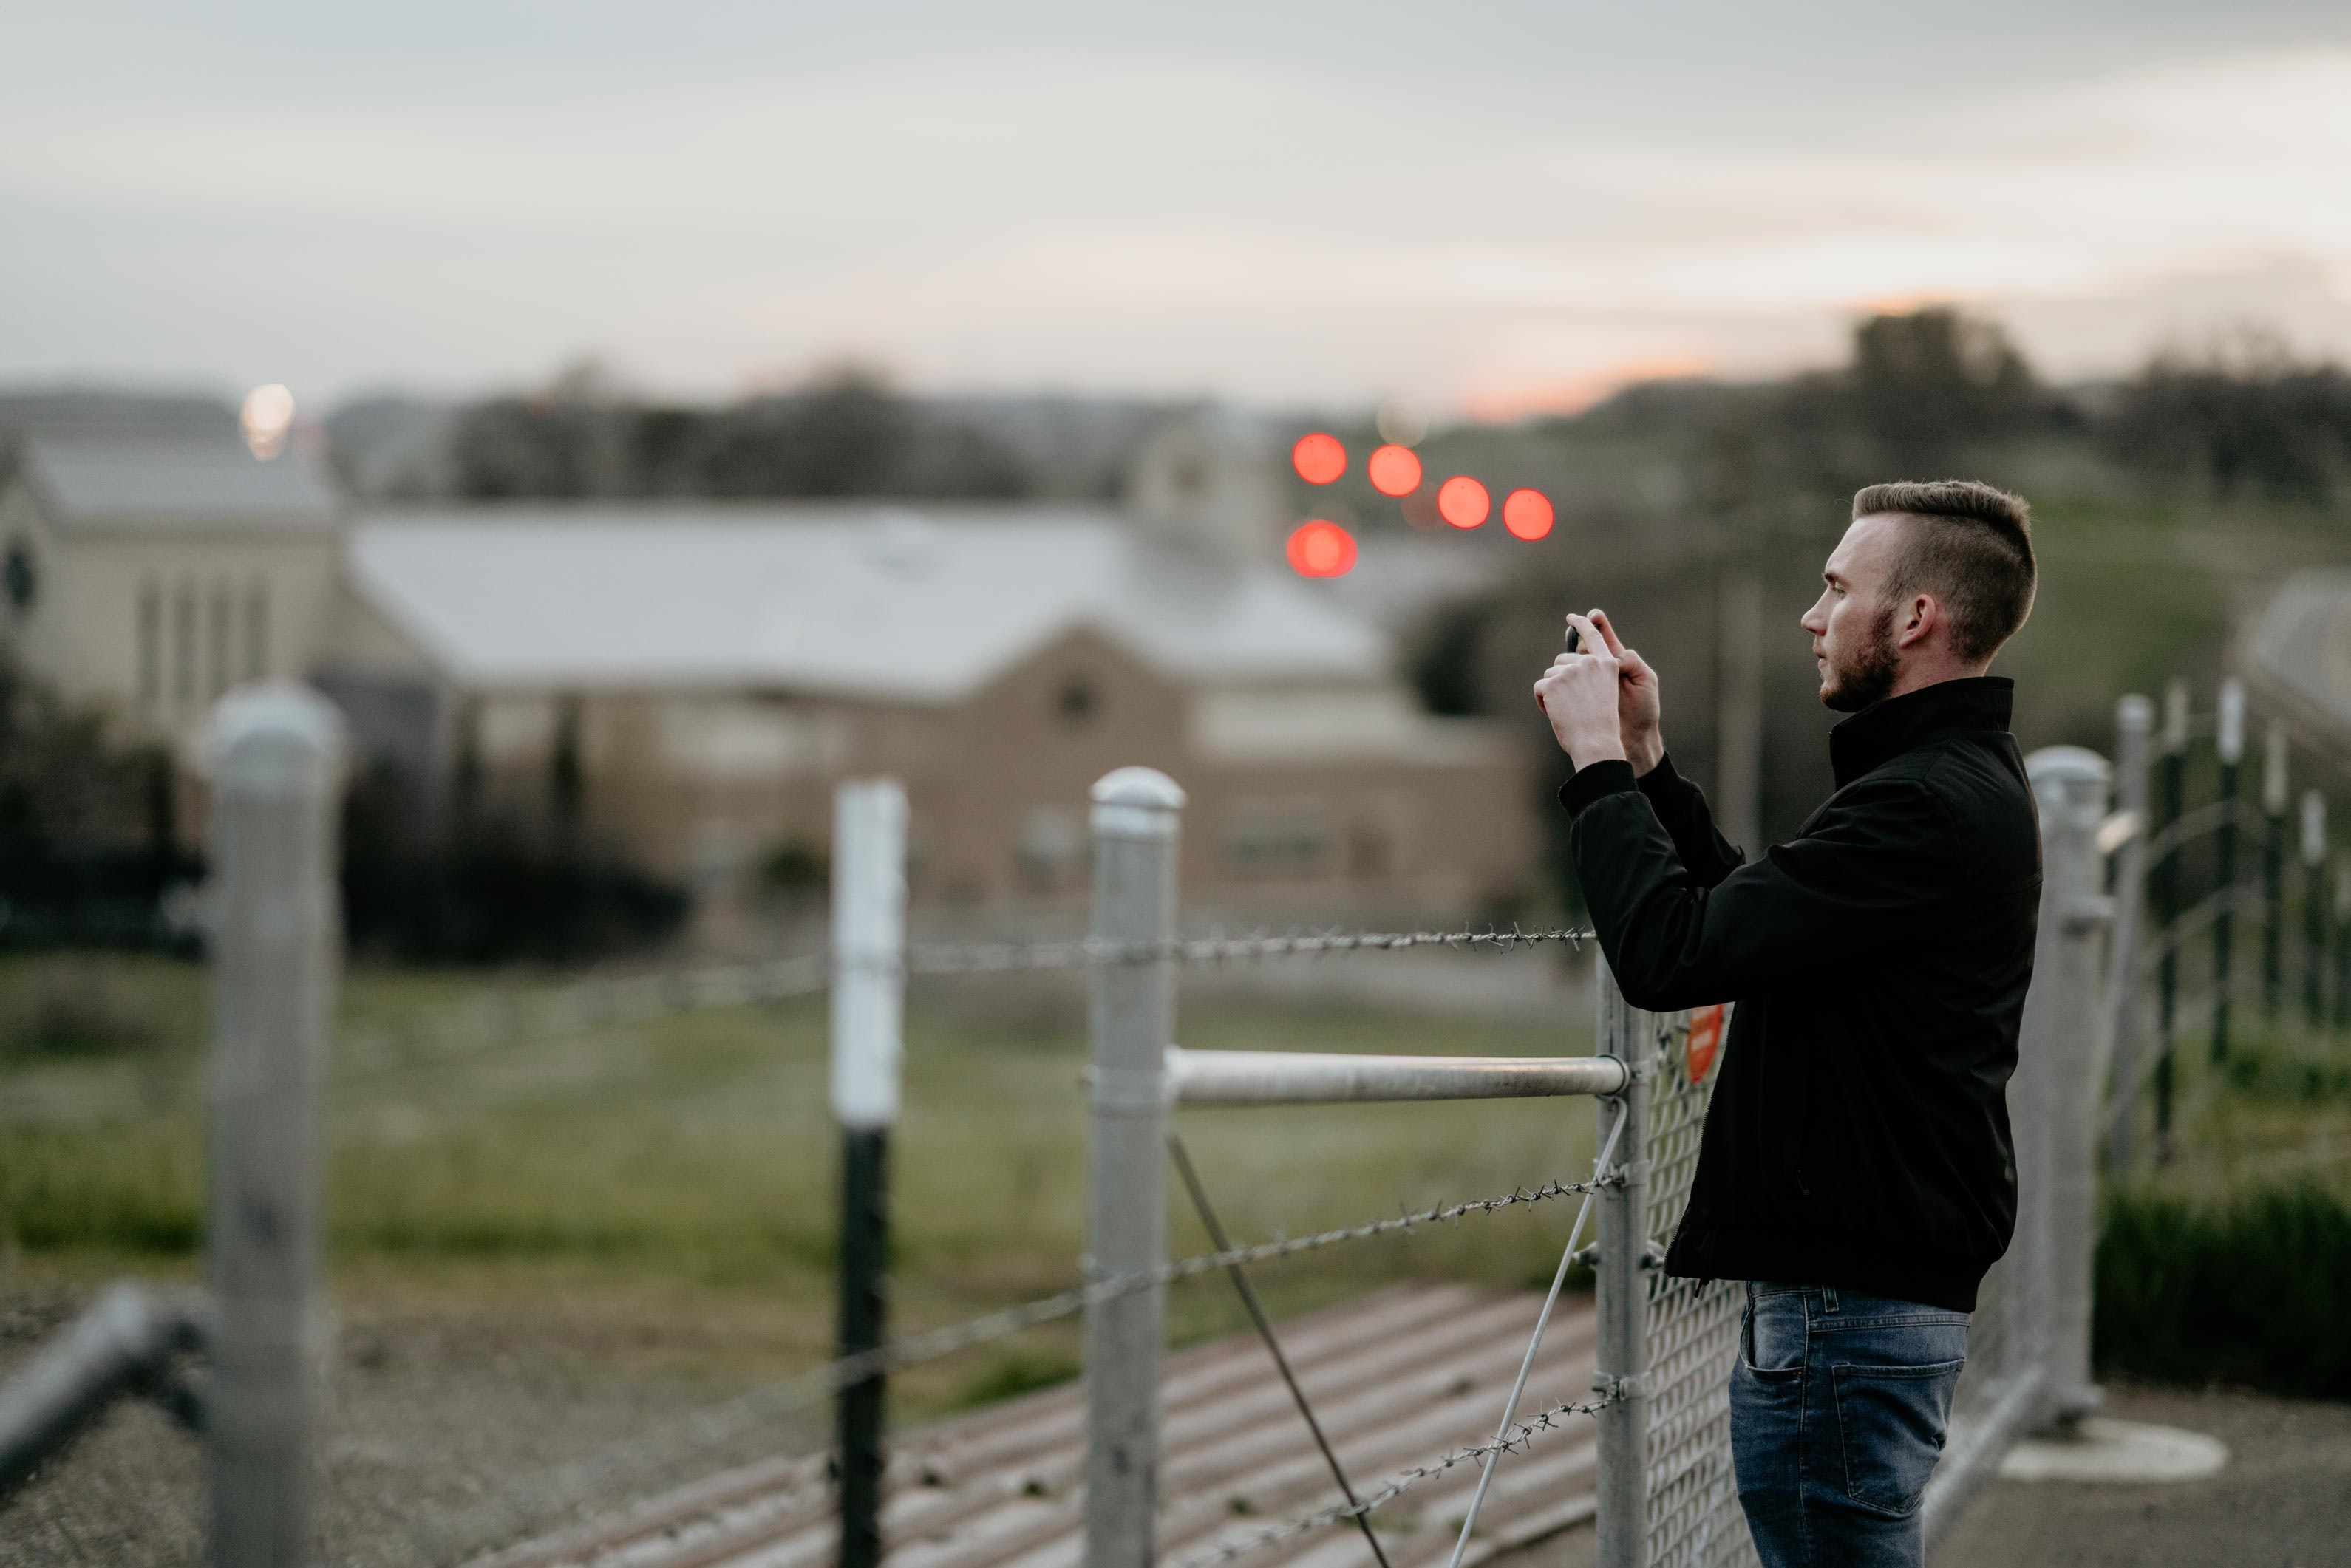 shallow focus photography of man taking a photo near fences